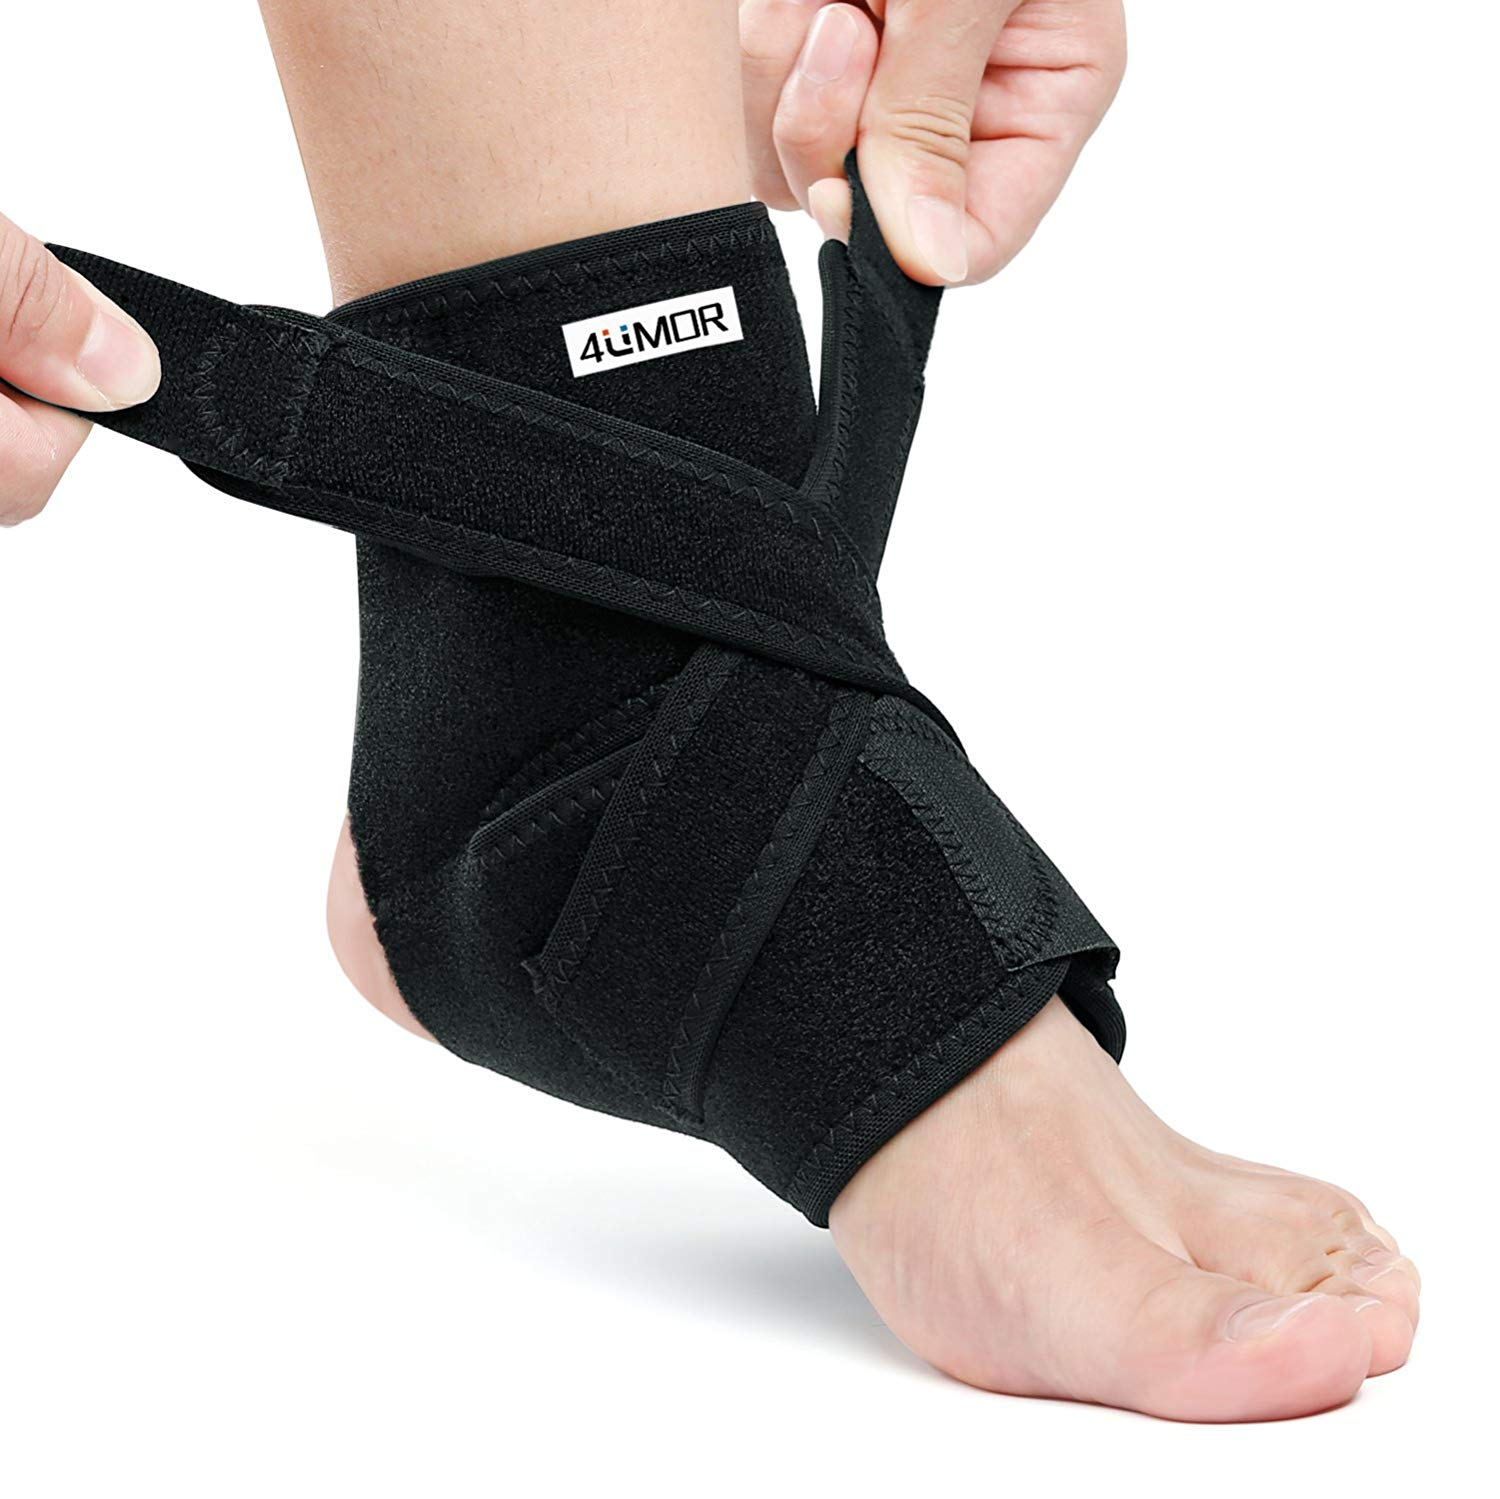 279decbab4 4UMOR Ankle Braces, Ankle Support Brace Ankle Support Sleeve for Walking,  Running, Sprains